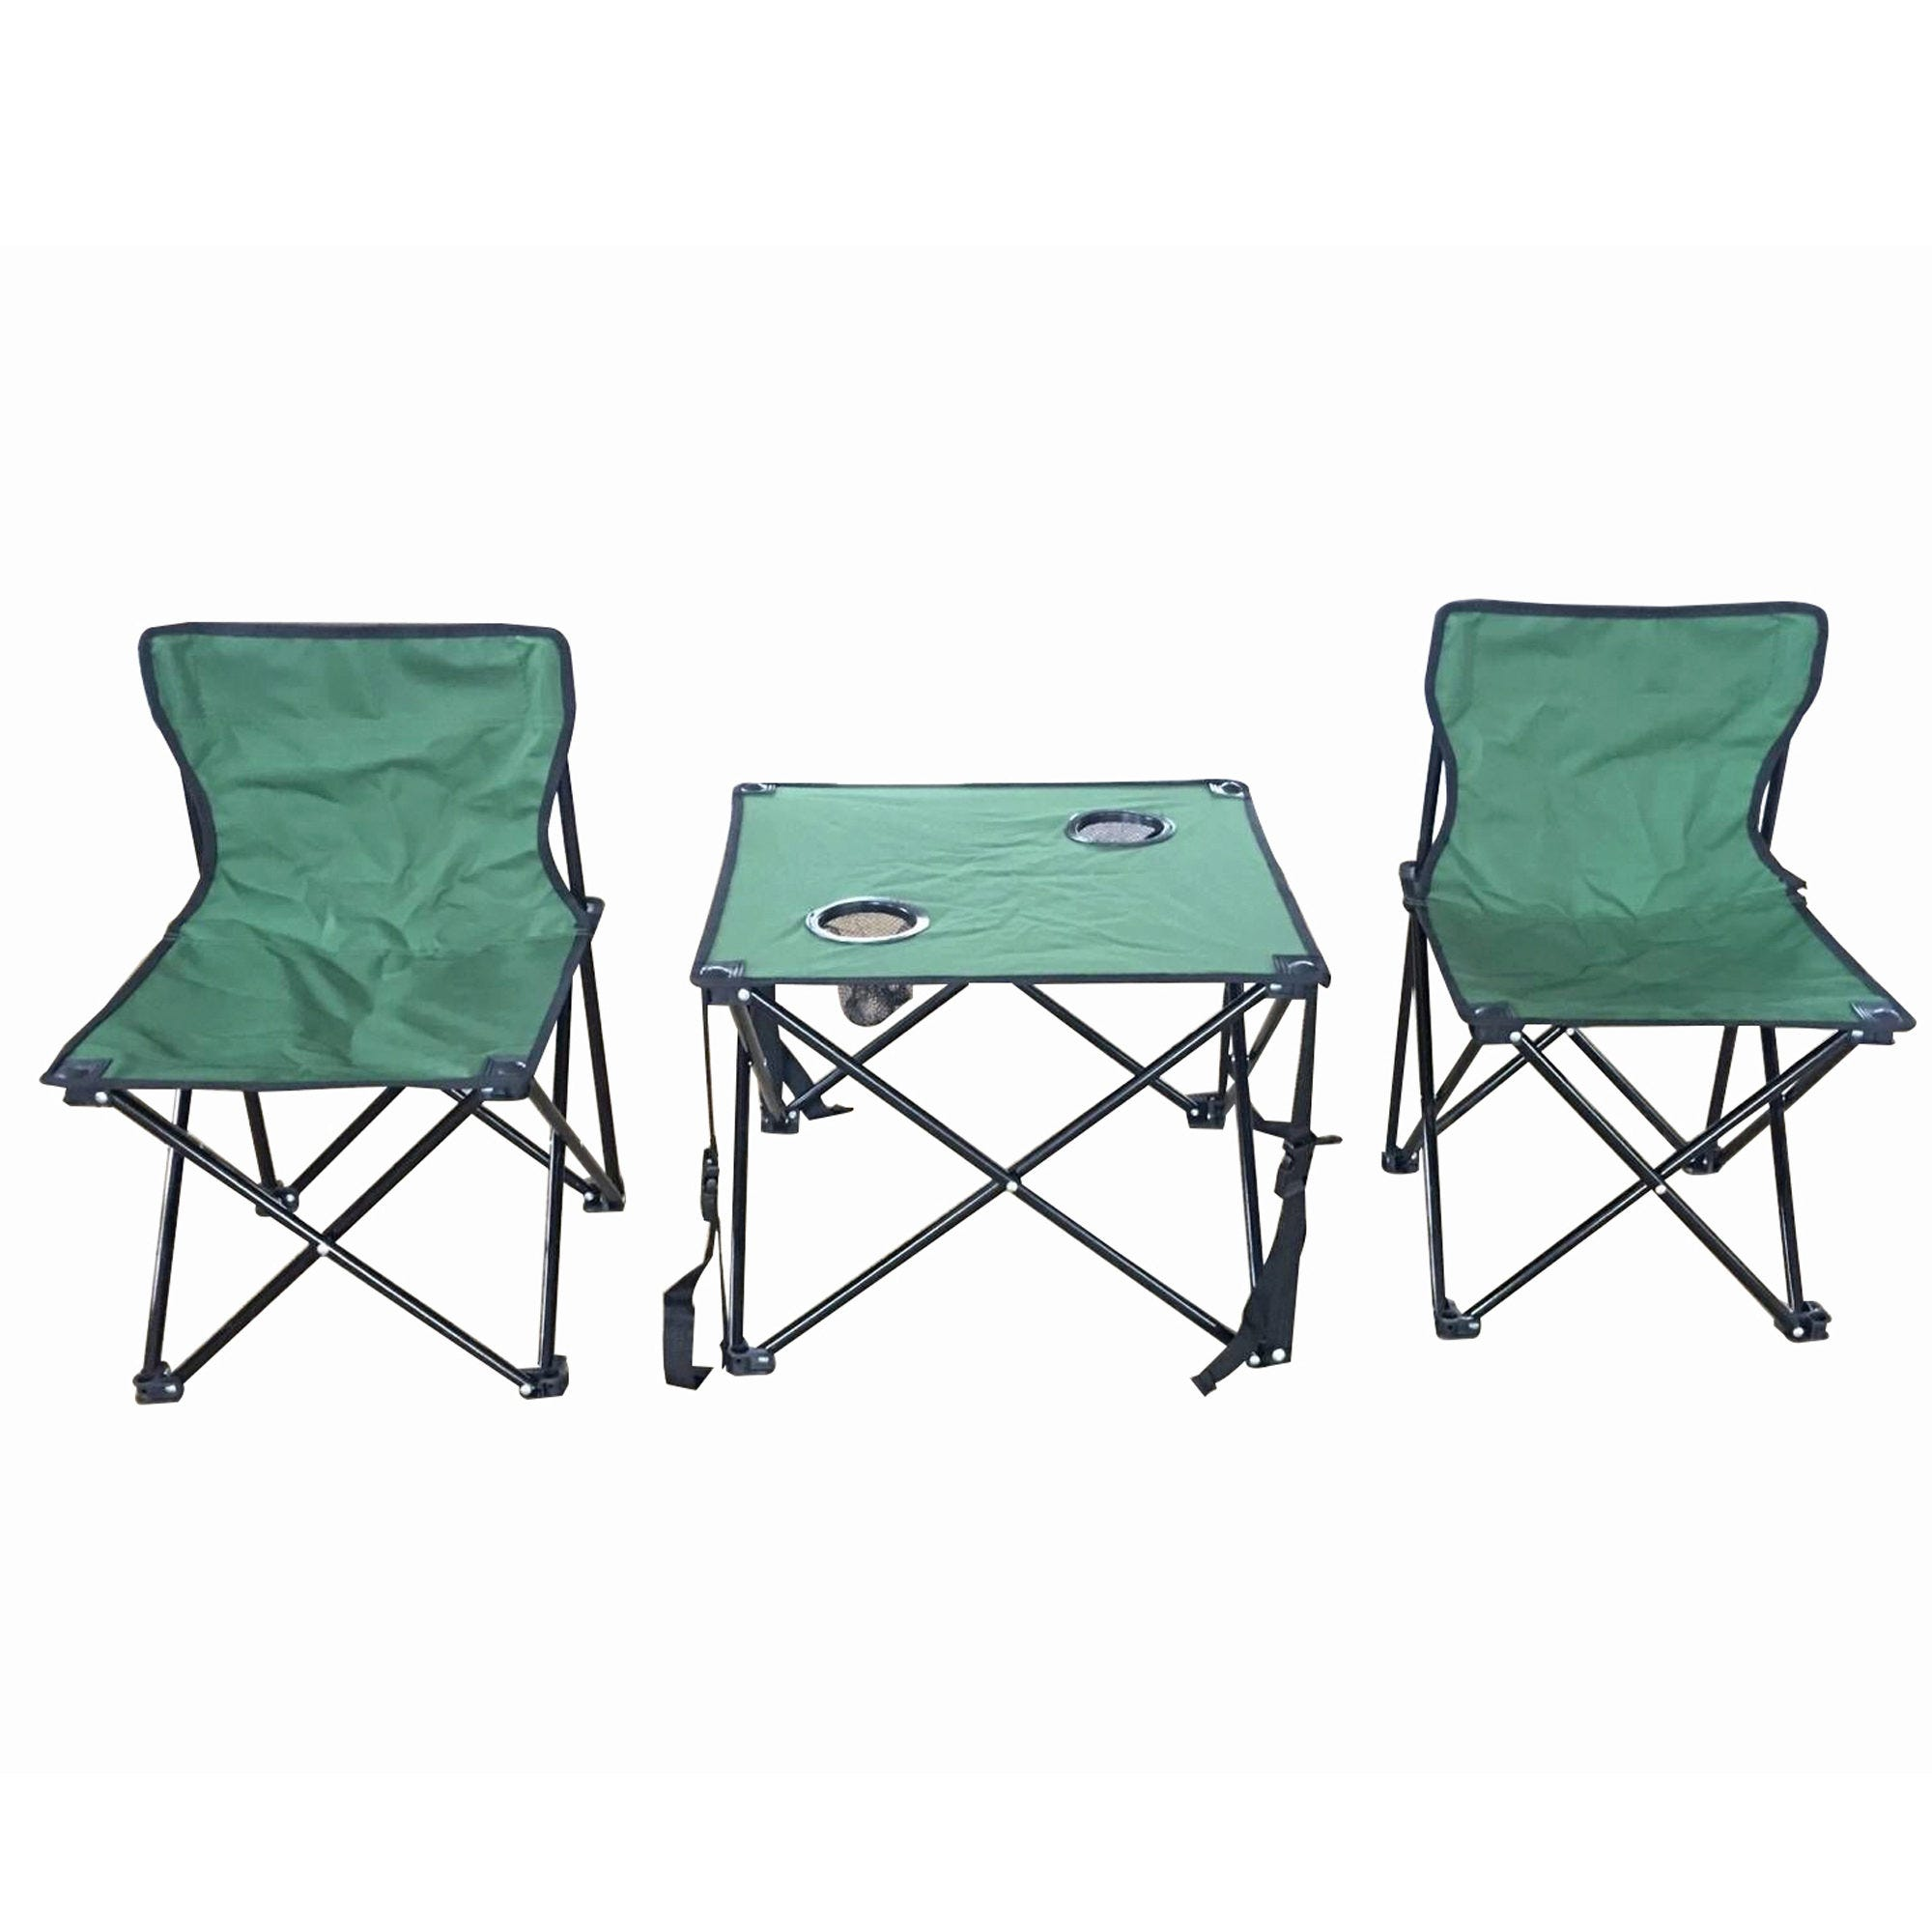 Folding Portable Camping Set with Carry Bag- Qty 1